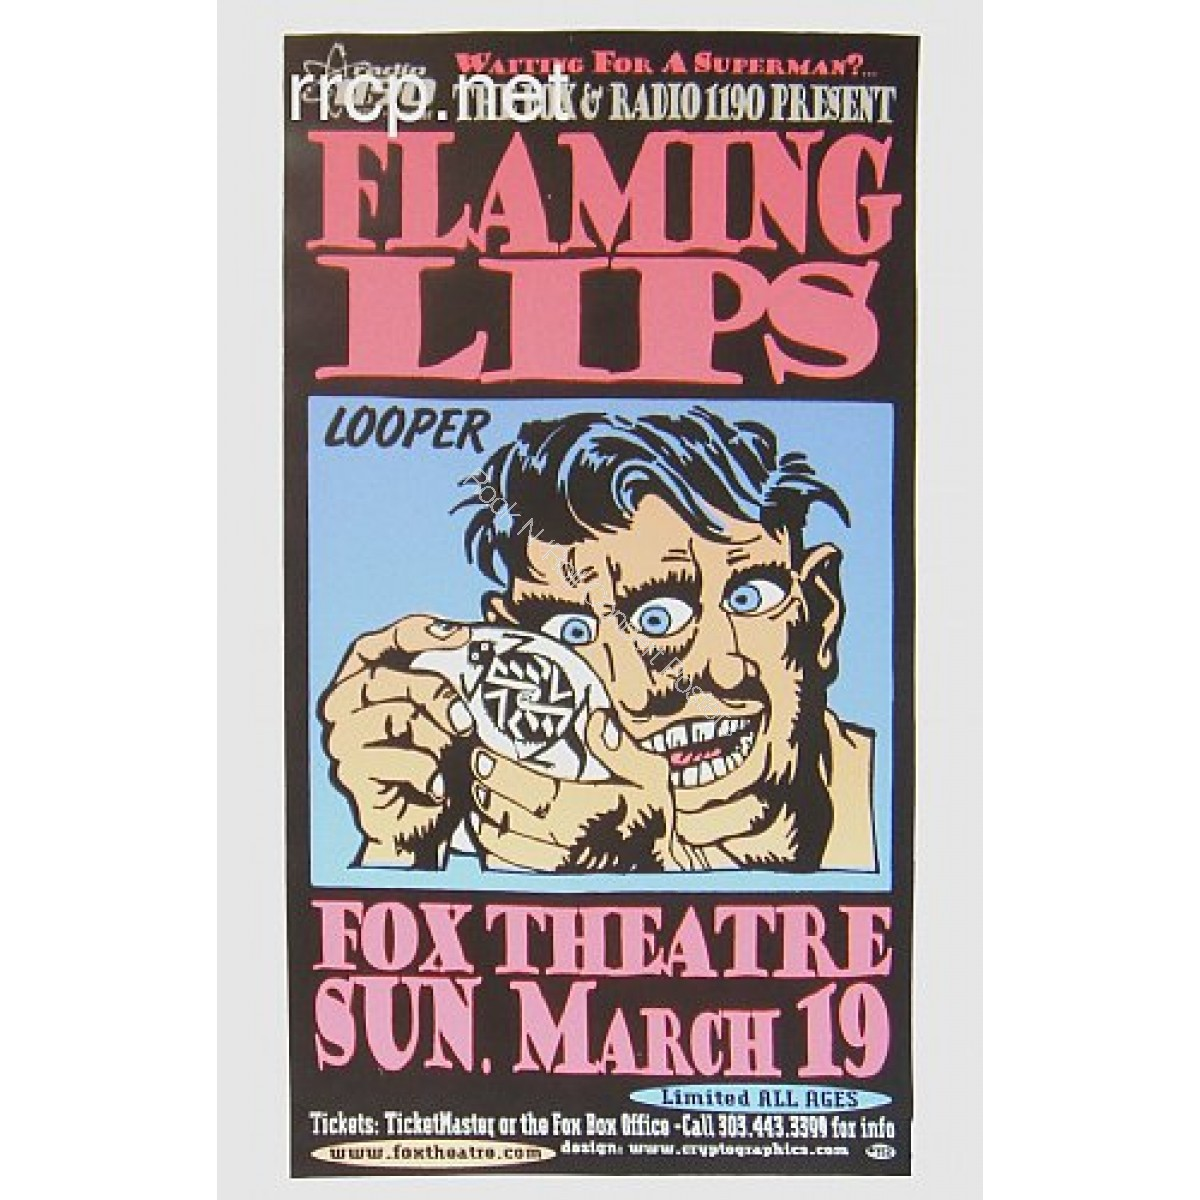 The Flaming Lips @ The Fox Theatre